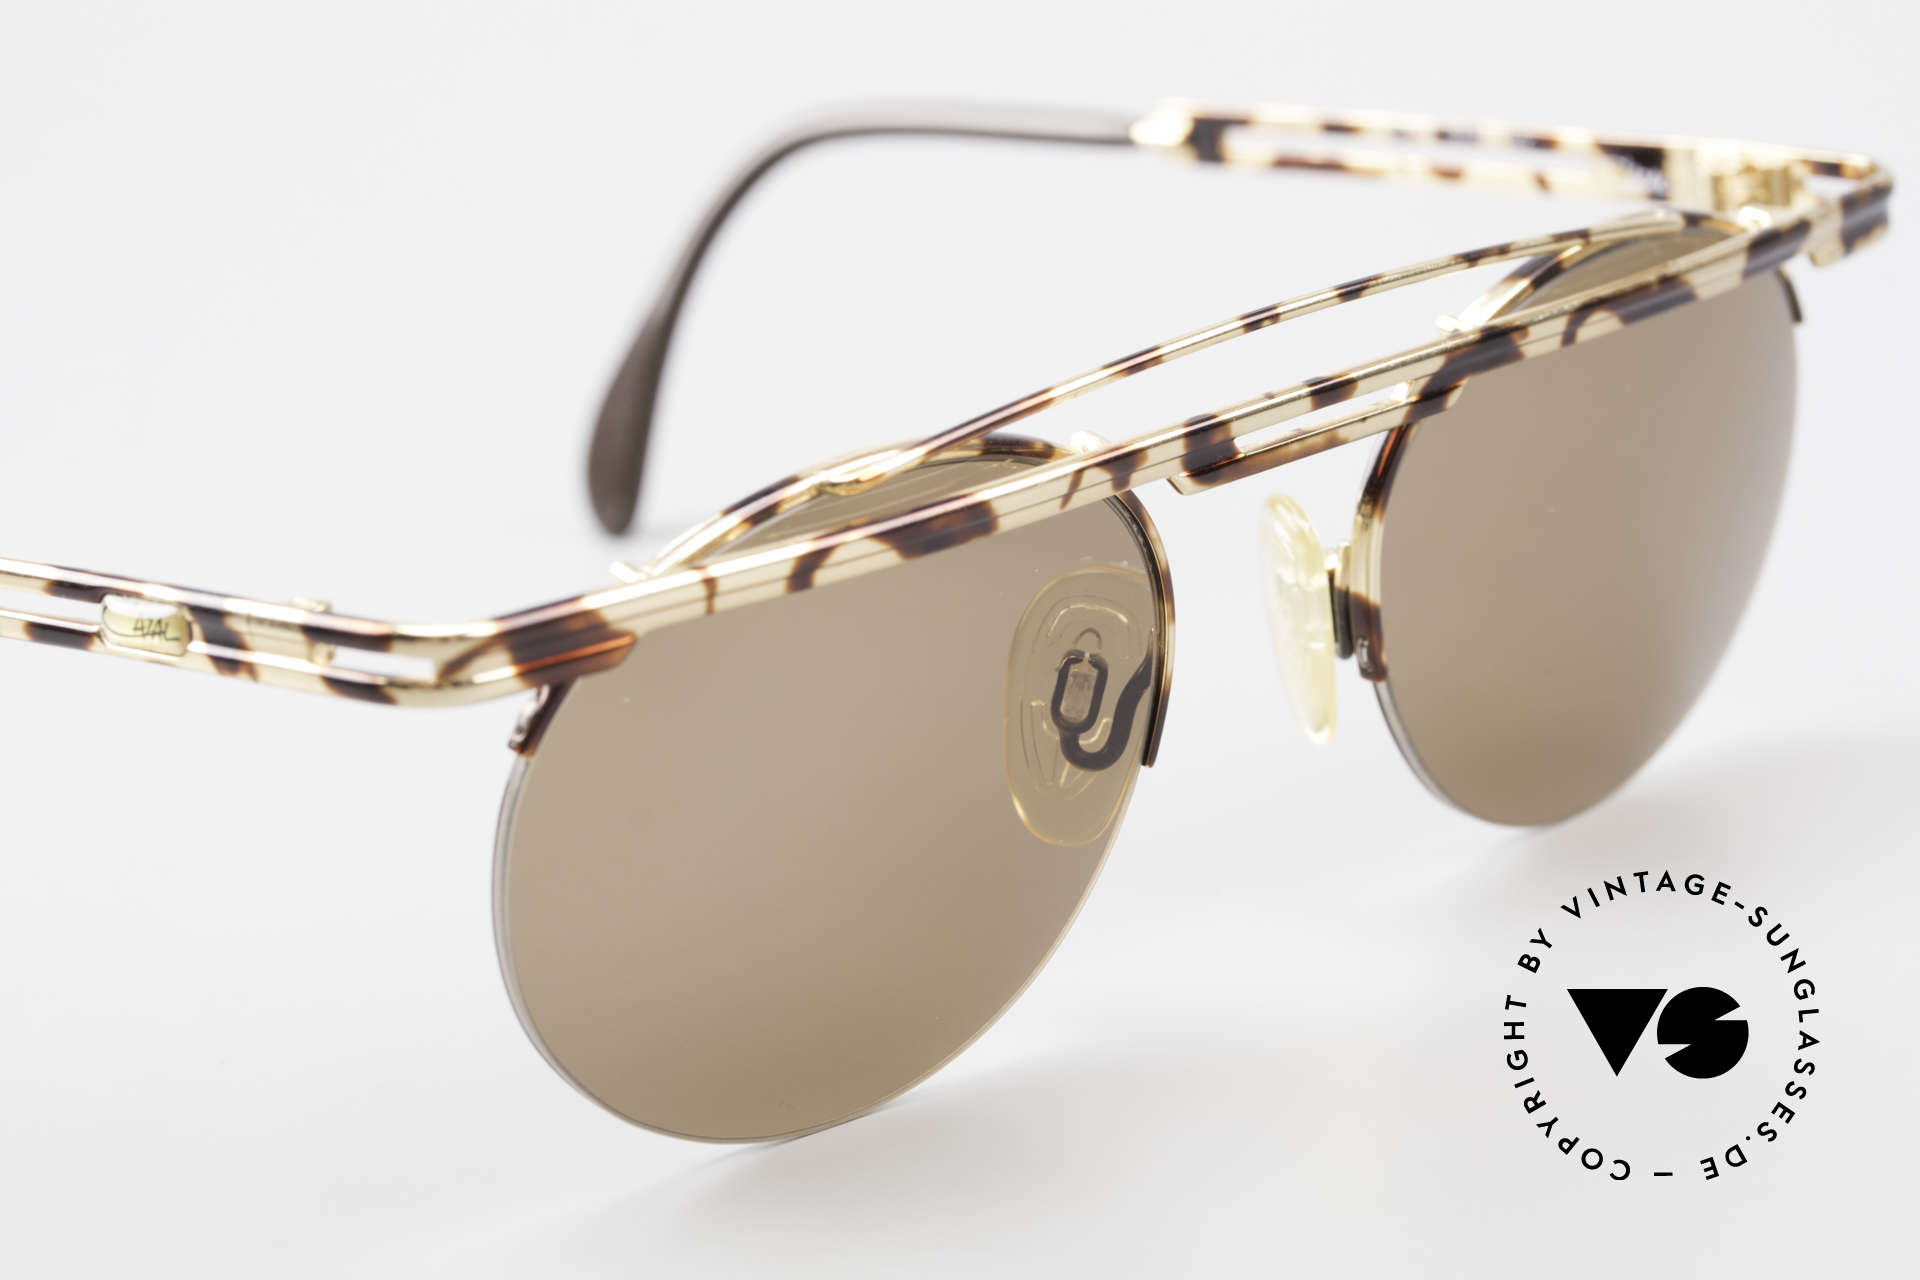 Cazal 748 Rare Vintage No Retro Shades, tangible high-end craftsmanship (frame made in Germany), Made for Men and Women